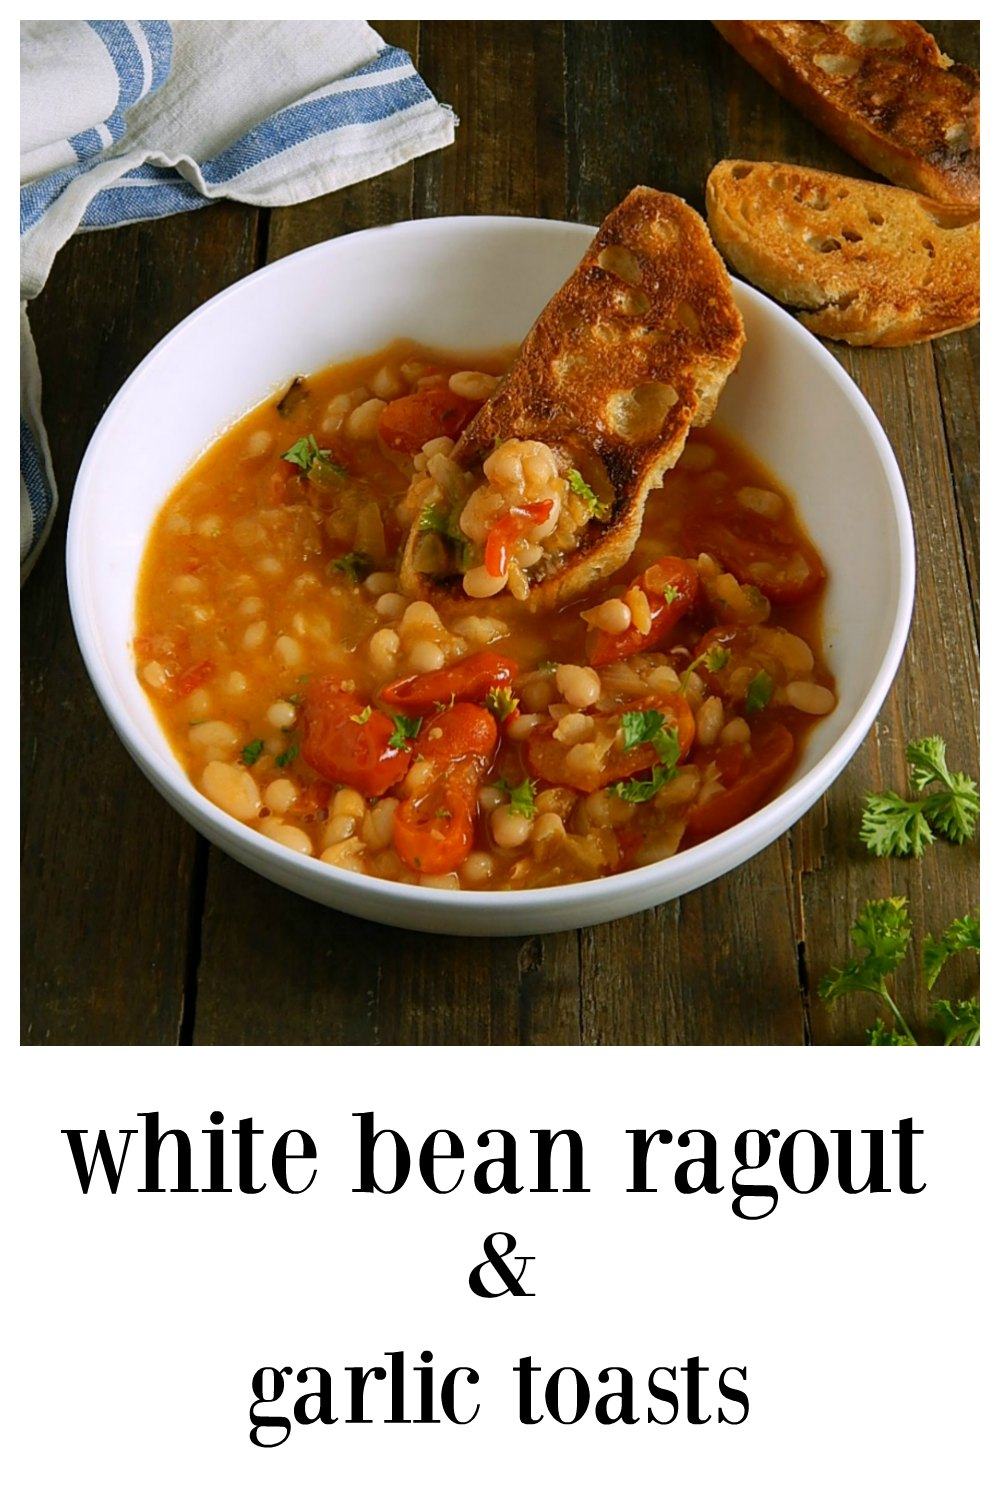 Yes, beans can be fabulous! Case in point this marvelous White Bean Ragout with Garlic Toasts, a blend of tomatoes, peppers, and Parmesan form the broth. #WhiteBeanRagout #WhiteBeansTomatoes #ItalianWhiteBeans